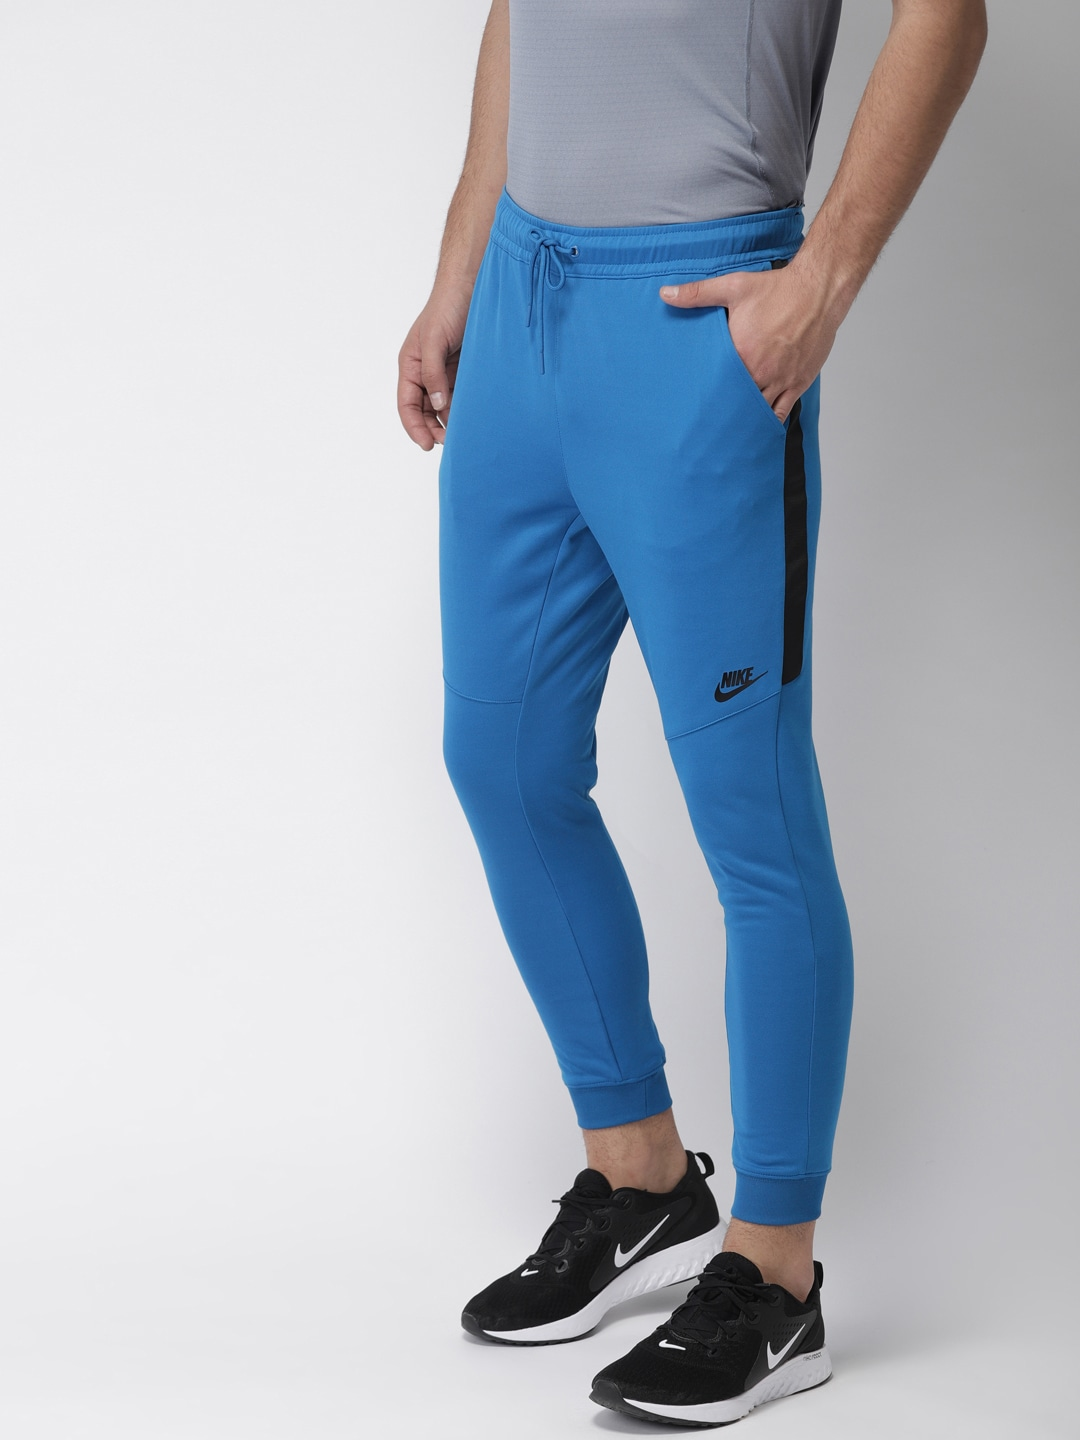 1d47e33a616b 3 Track Pants Pants - Buy 3 Track Pants Pants online in India